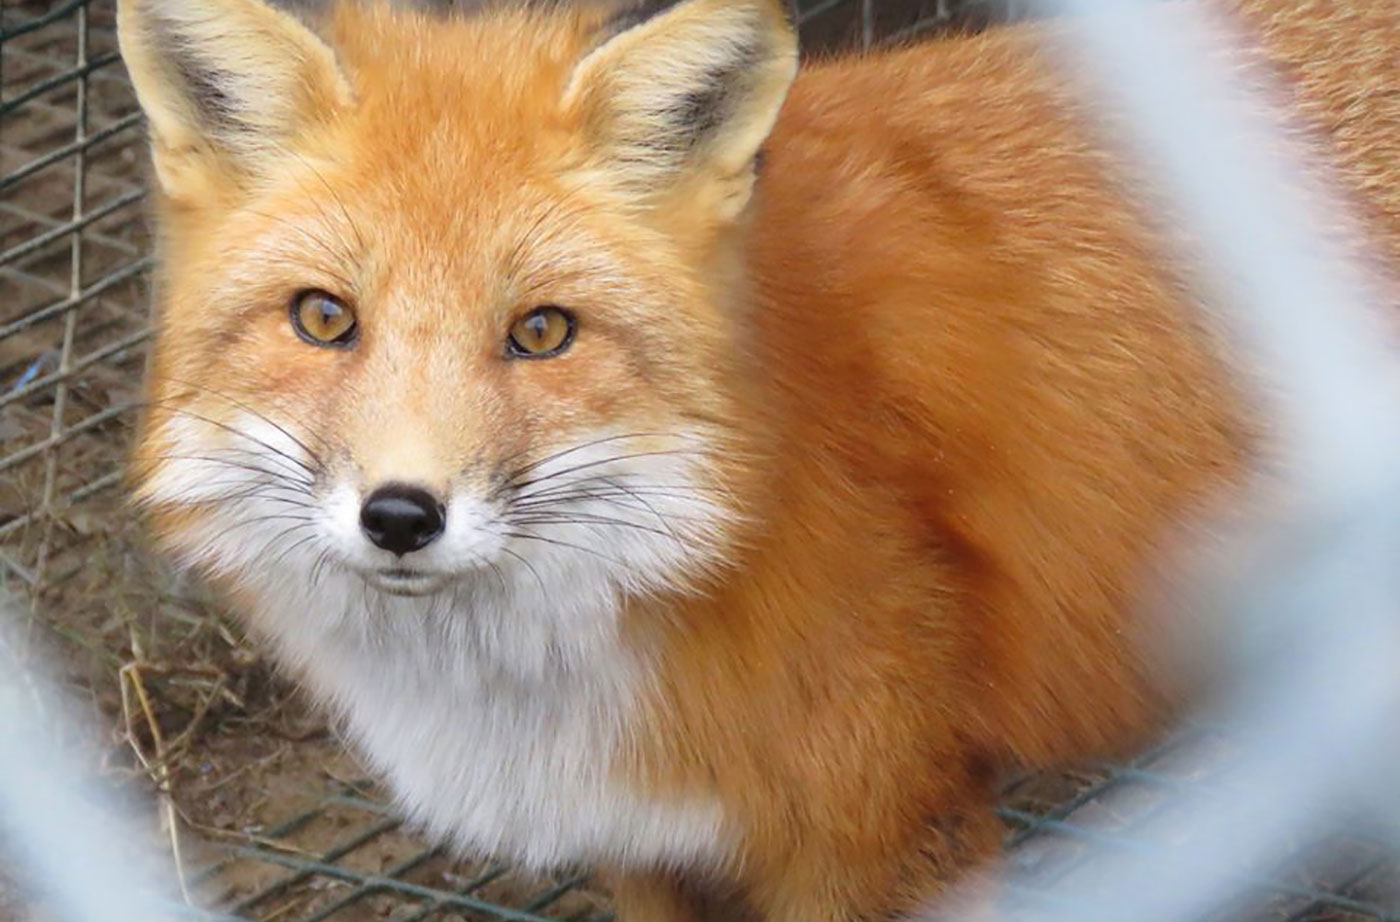 wildlife rehab of fox at Duck Pond Wildlife Center